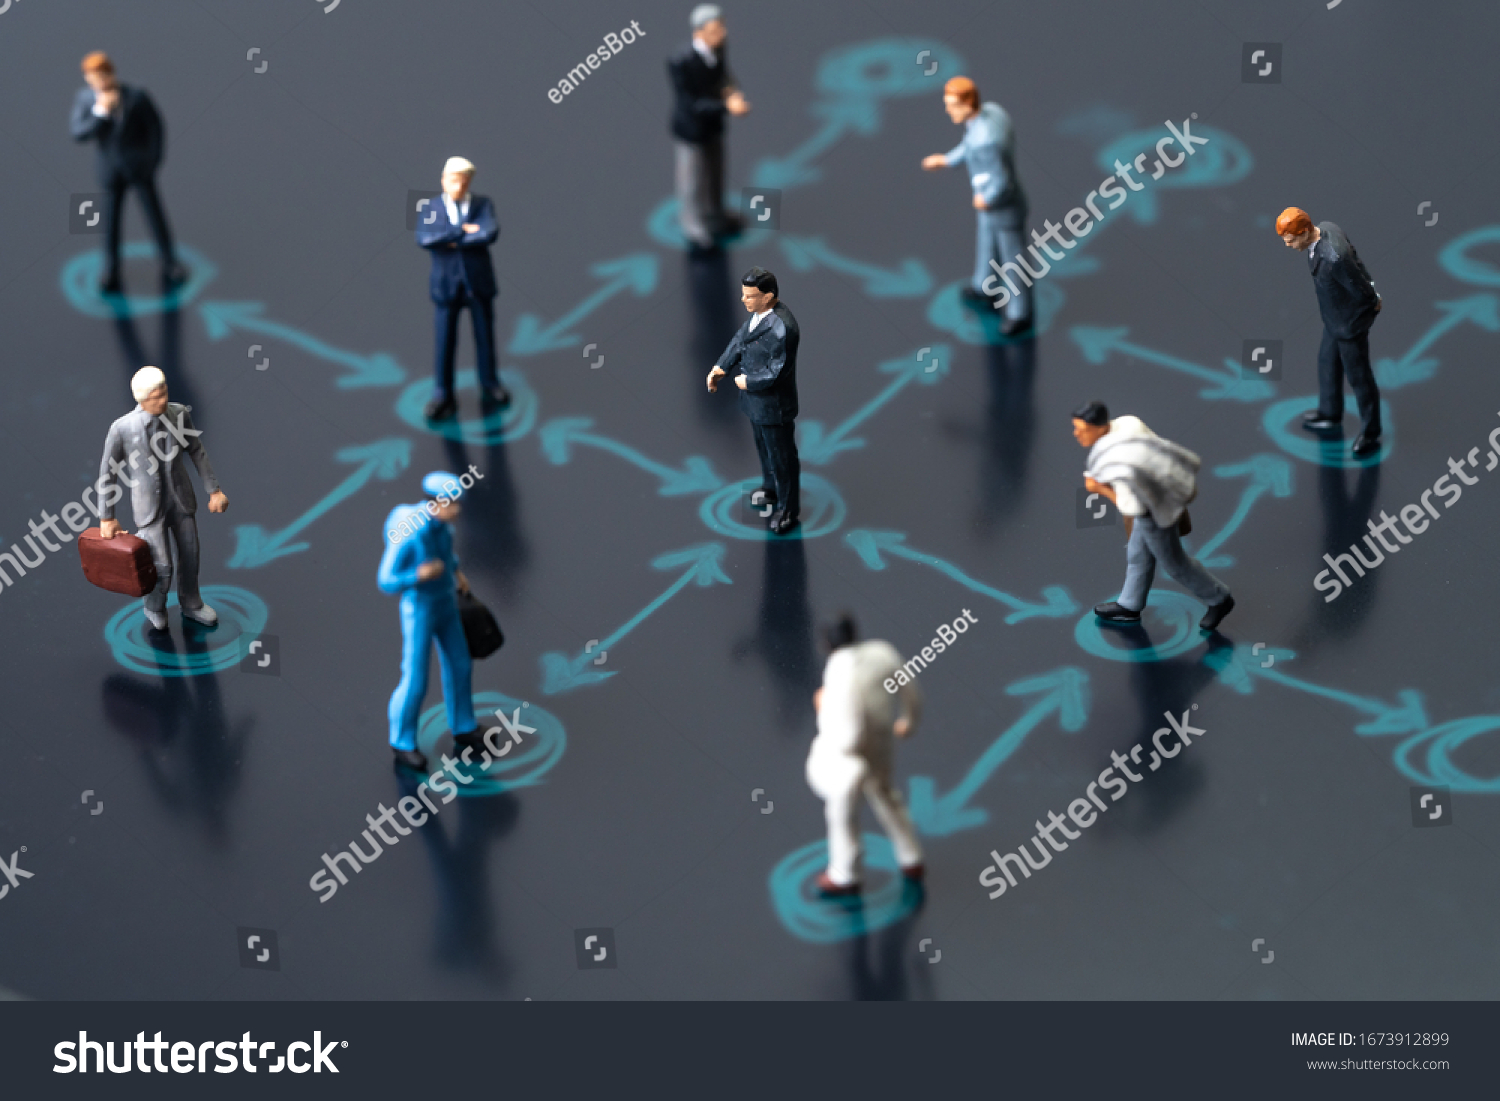 Social distancing, keep distance in public society people to protect COVID-19 coronavirus outbreak spreading concept, businessmen miniature keep distance away in the meeting with distant measure. #1673912899